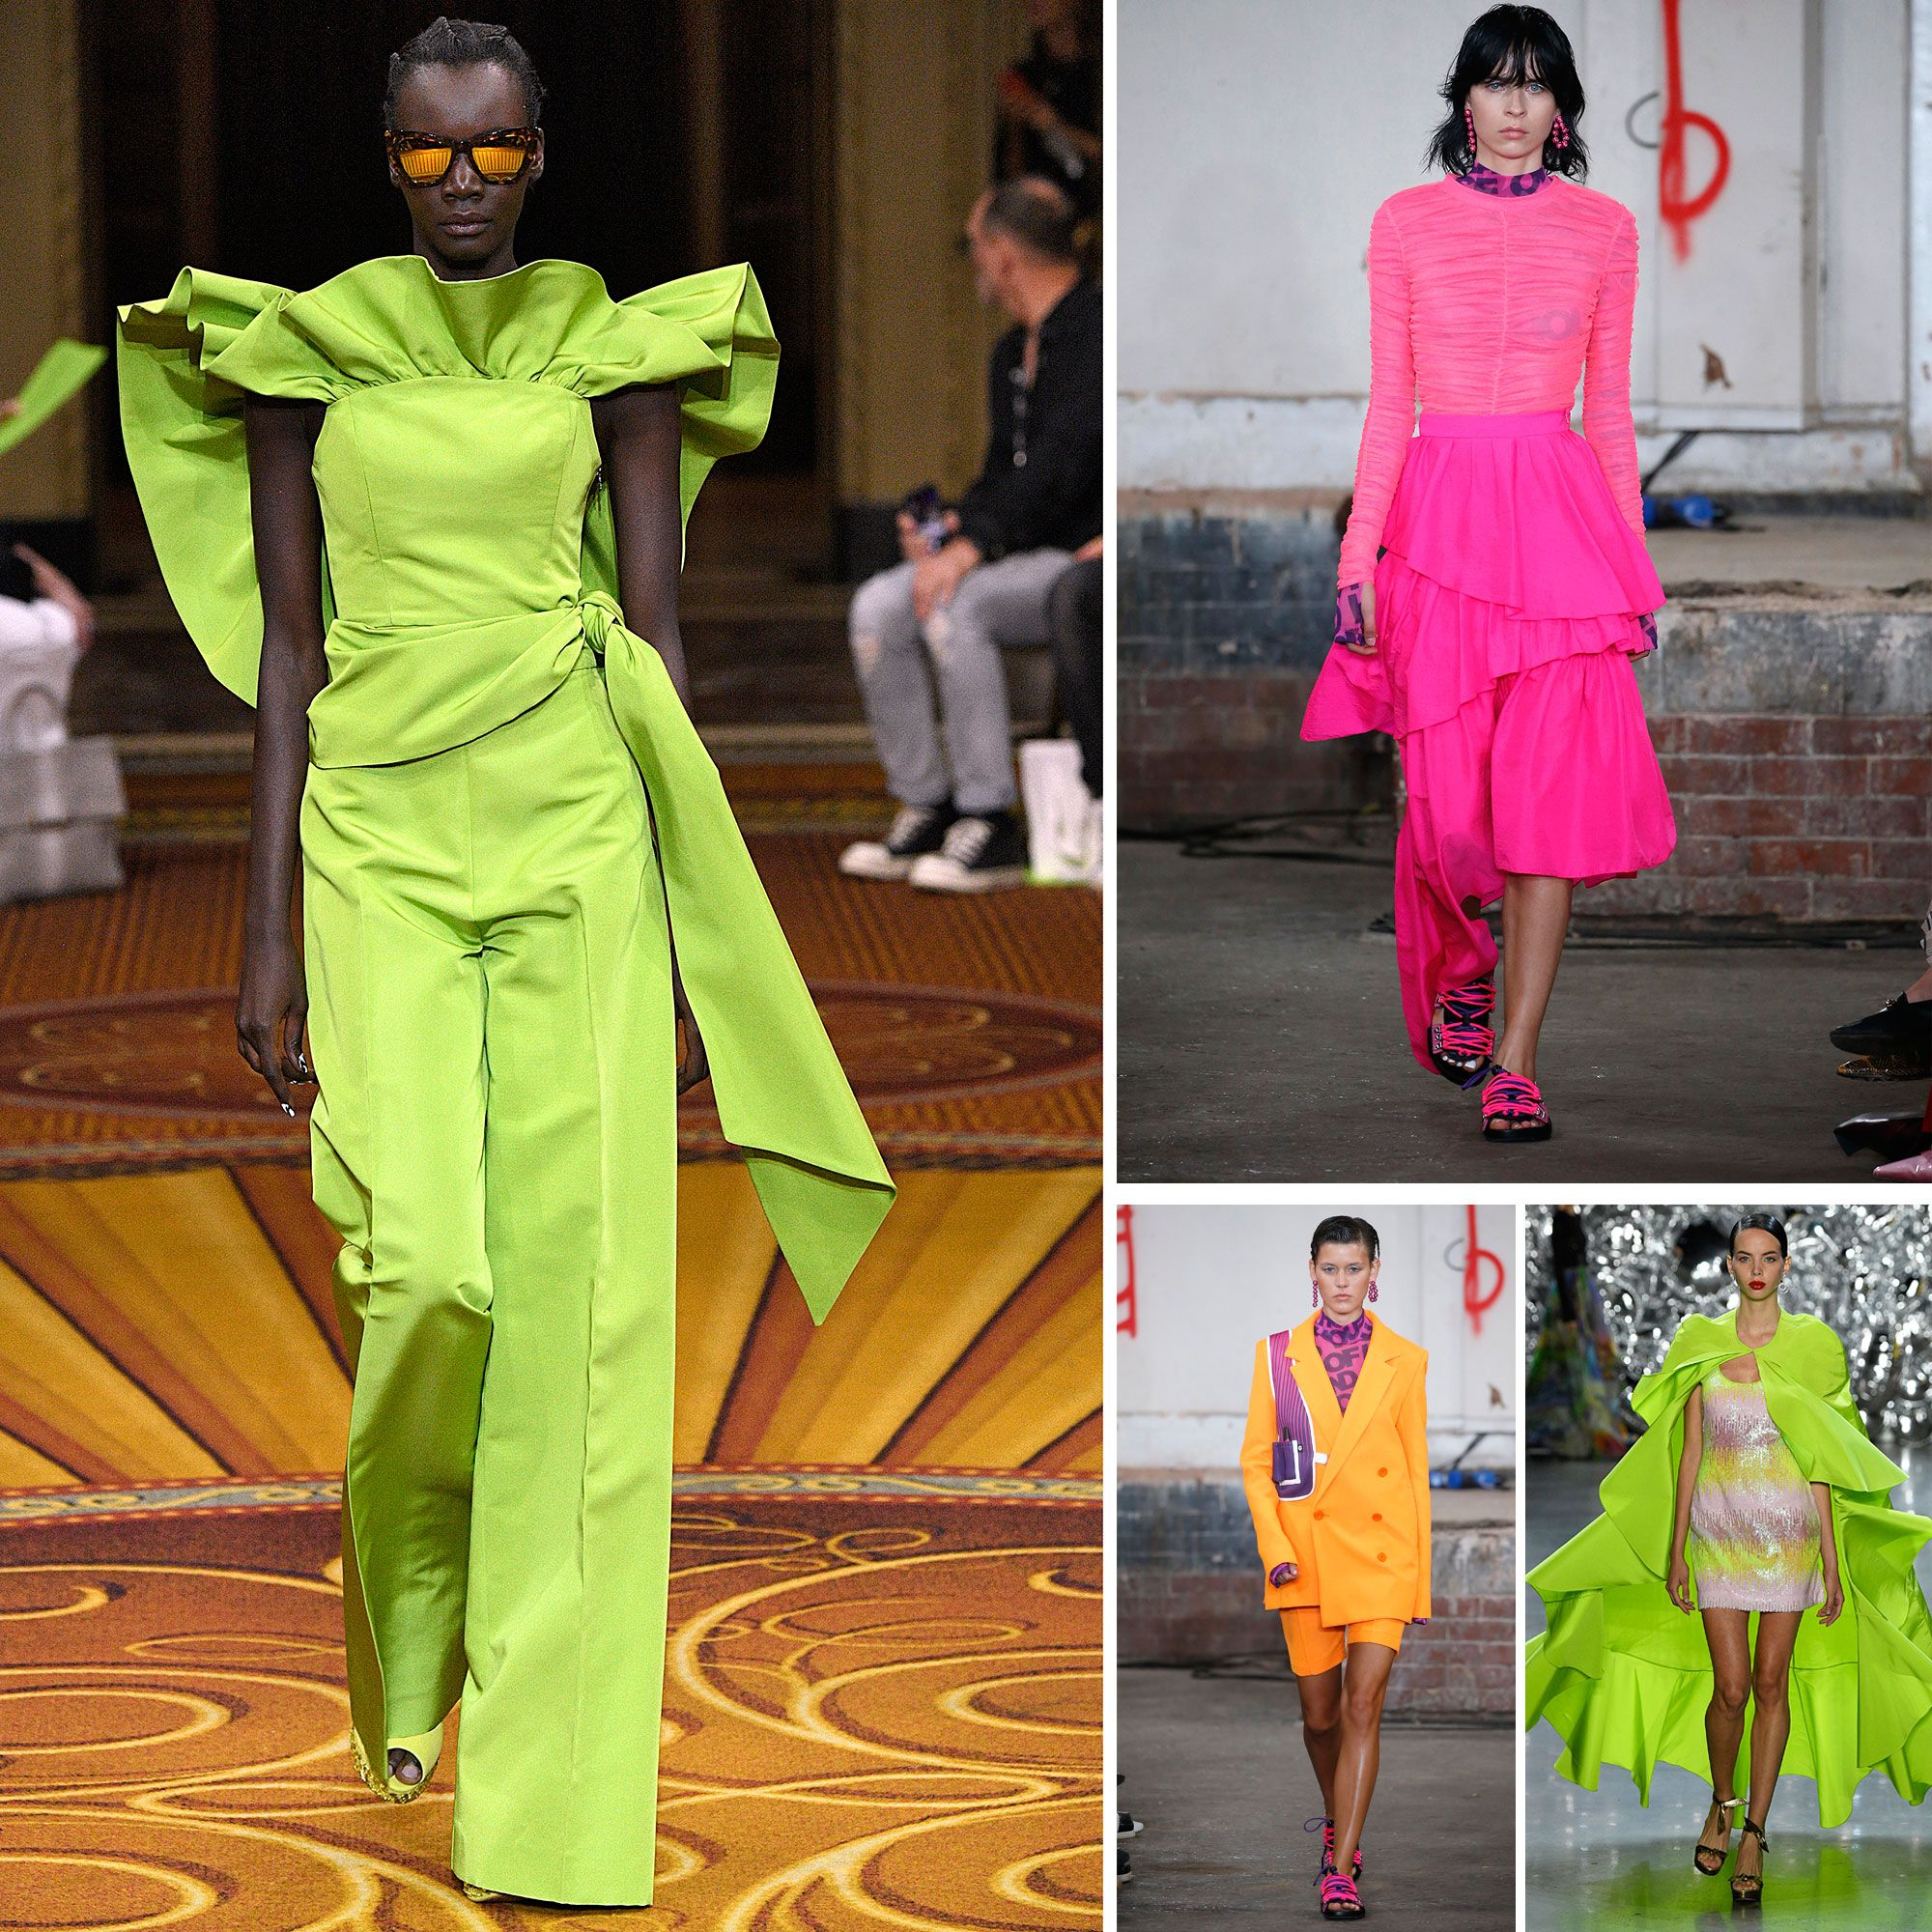 Spring/summer 2019 fashion trends: neon